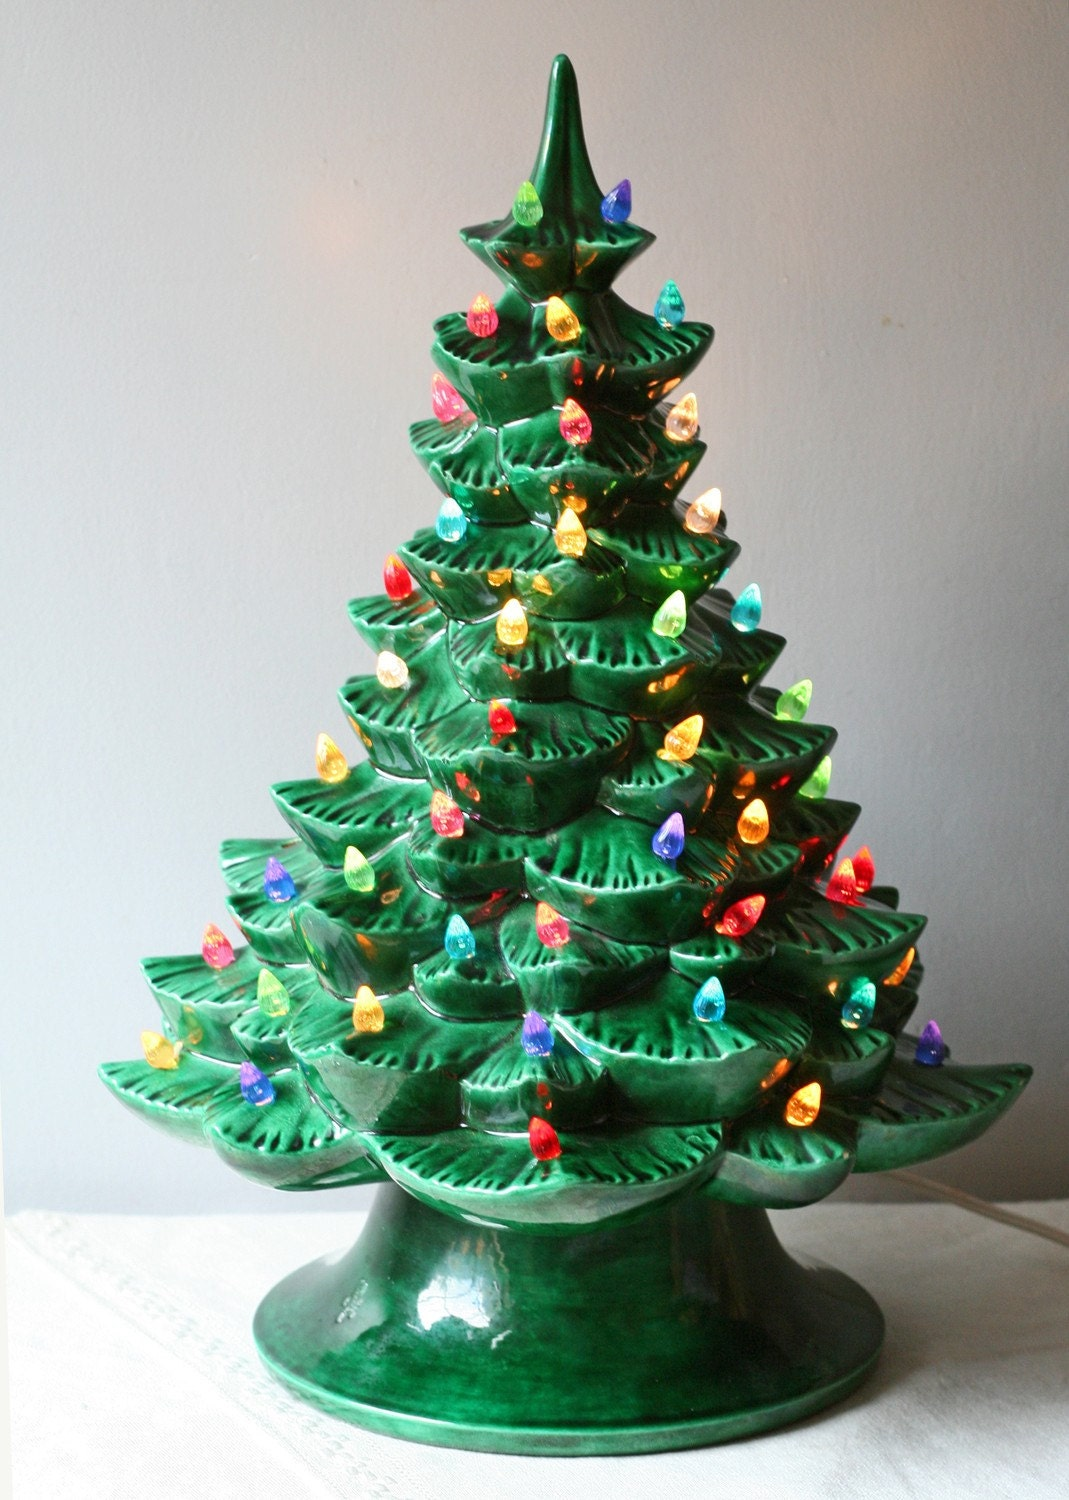 Vintage 1960s Green Ceramic Christmas Tree